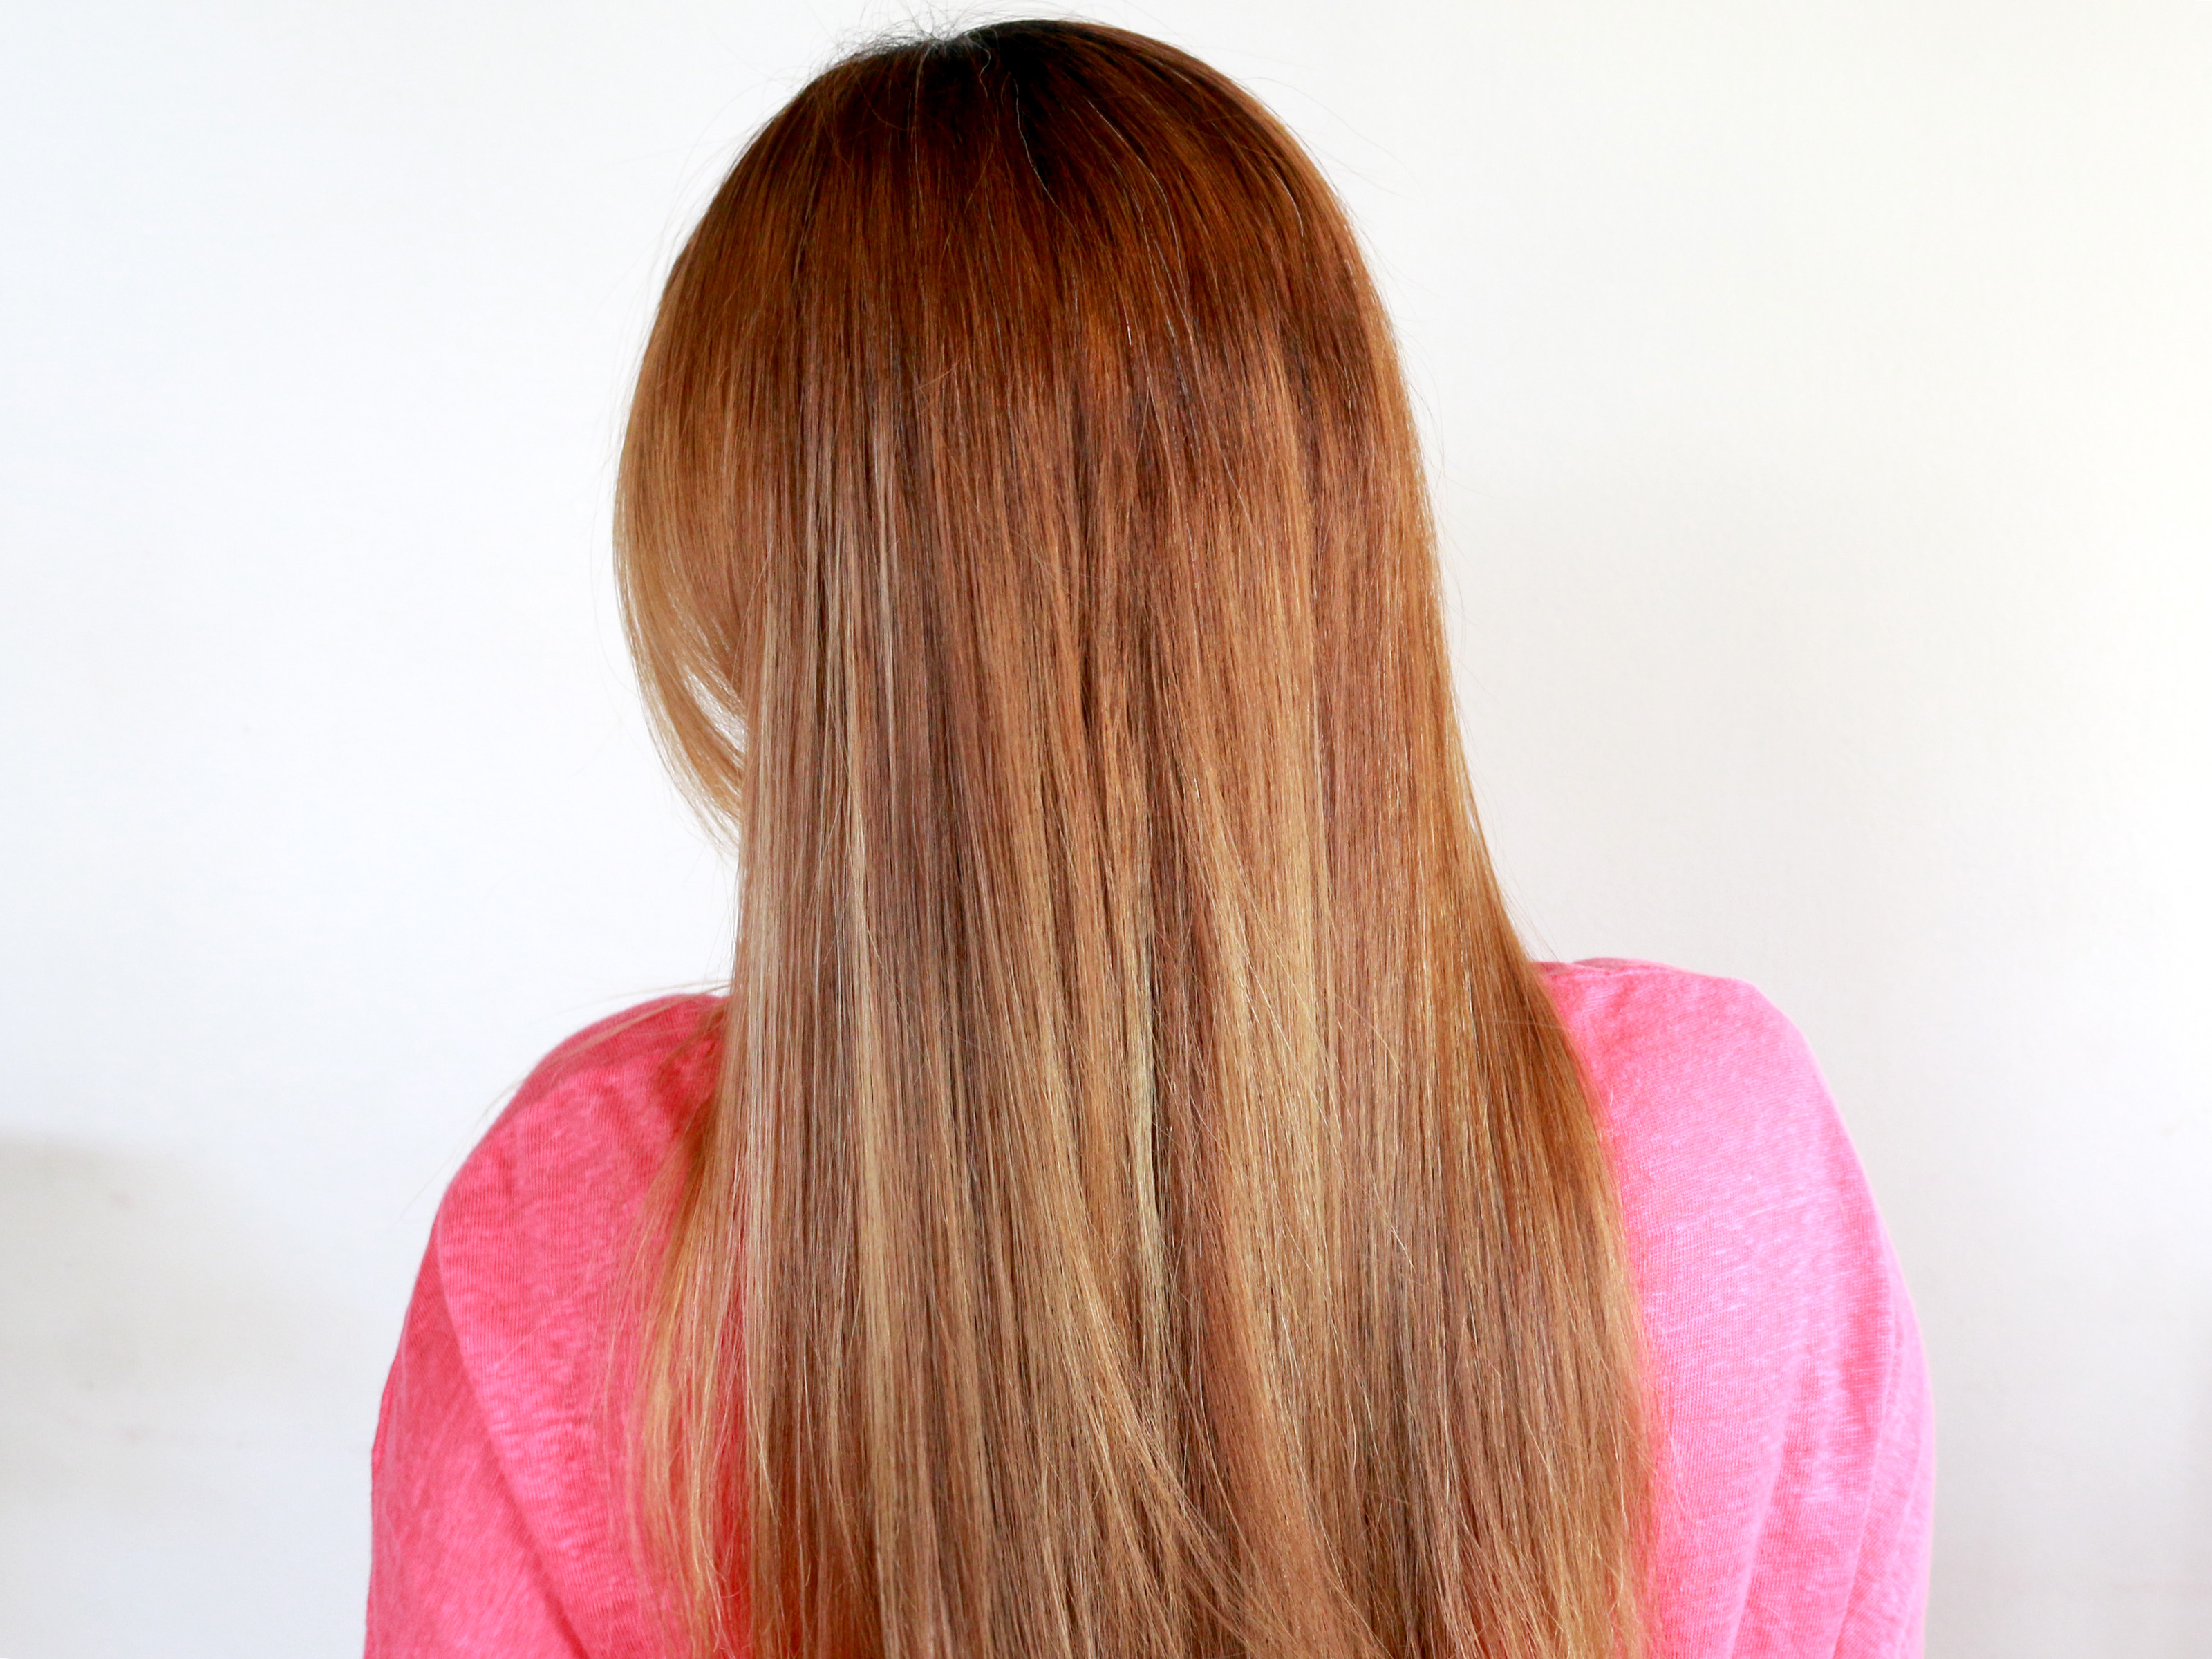 How To Grow Coarse Hair Long 8 Steps With Pictures